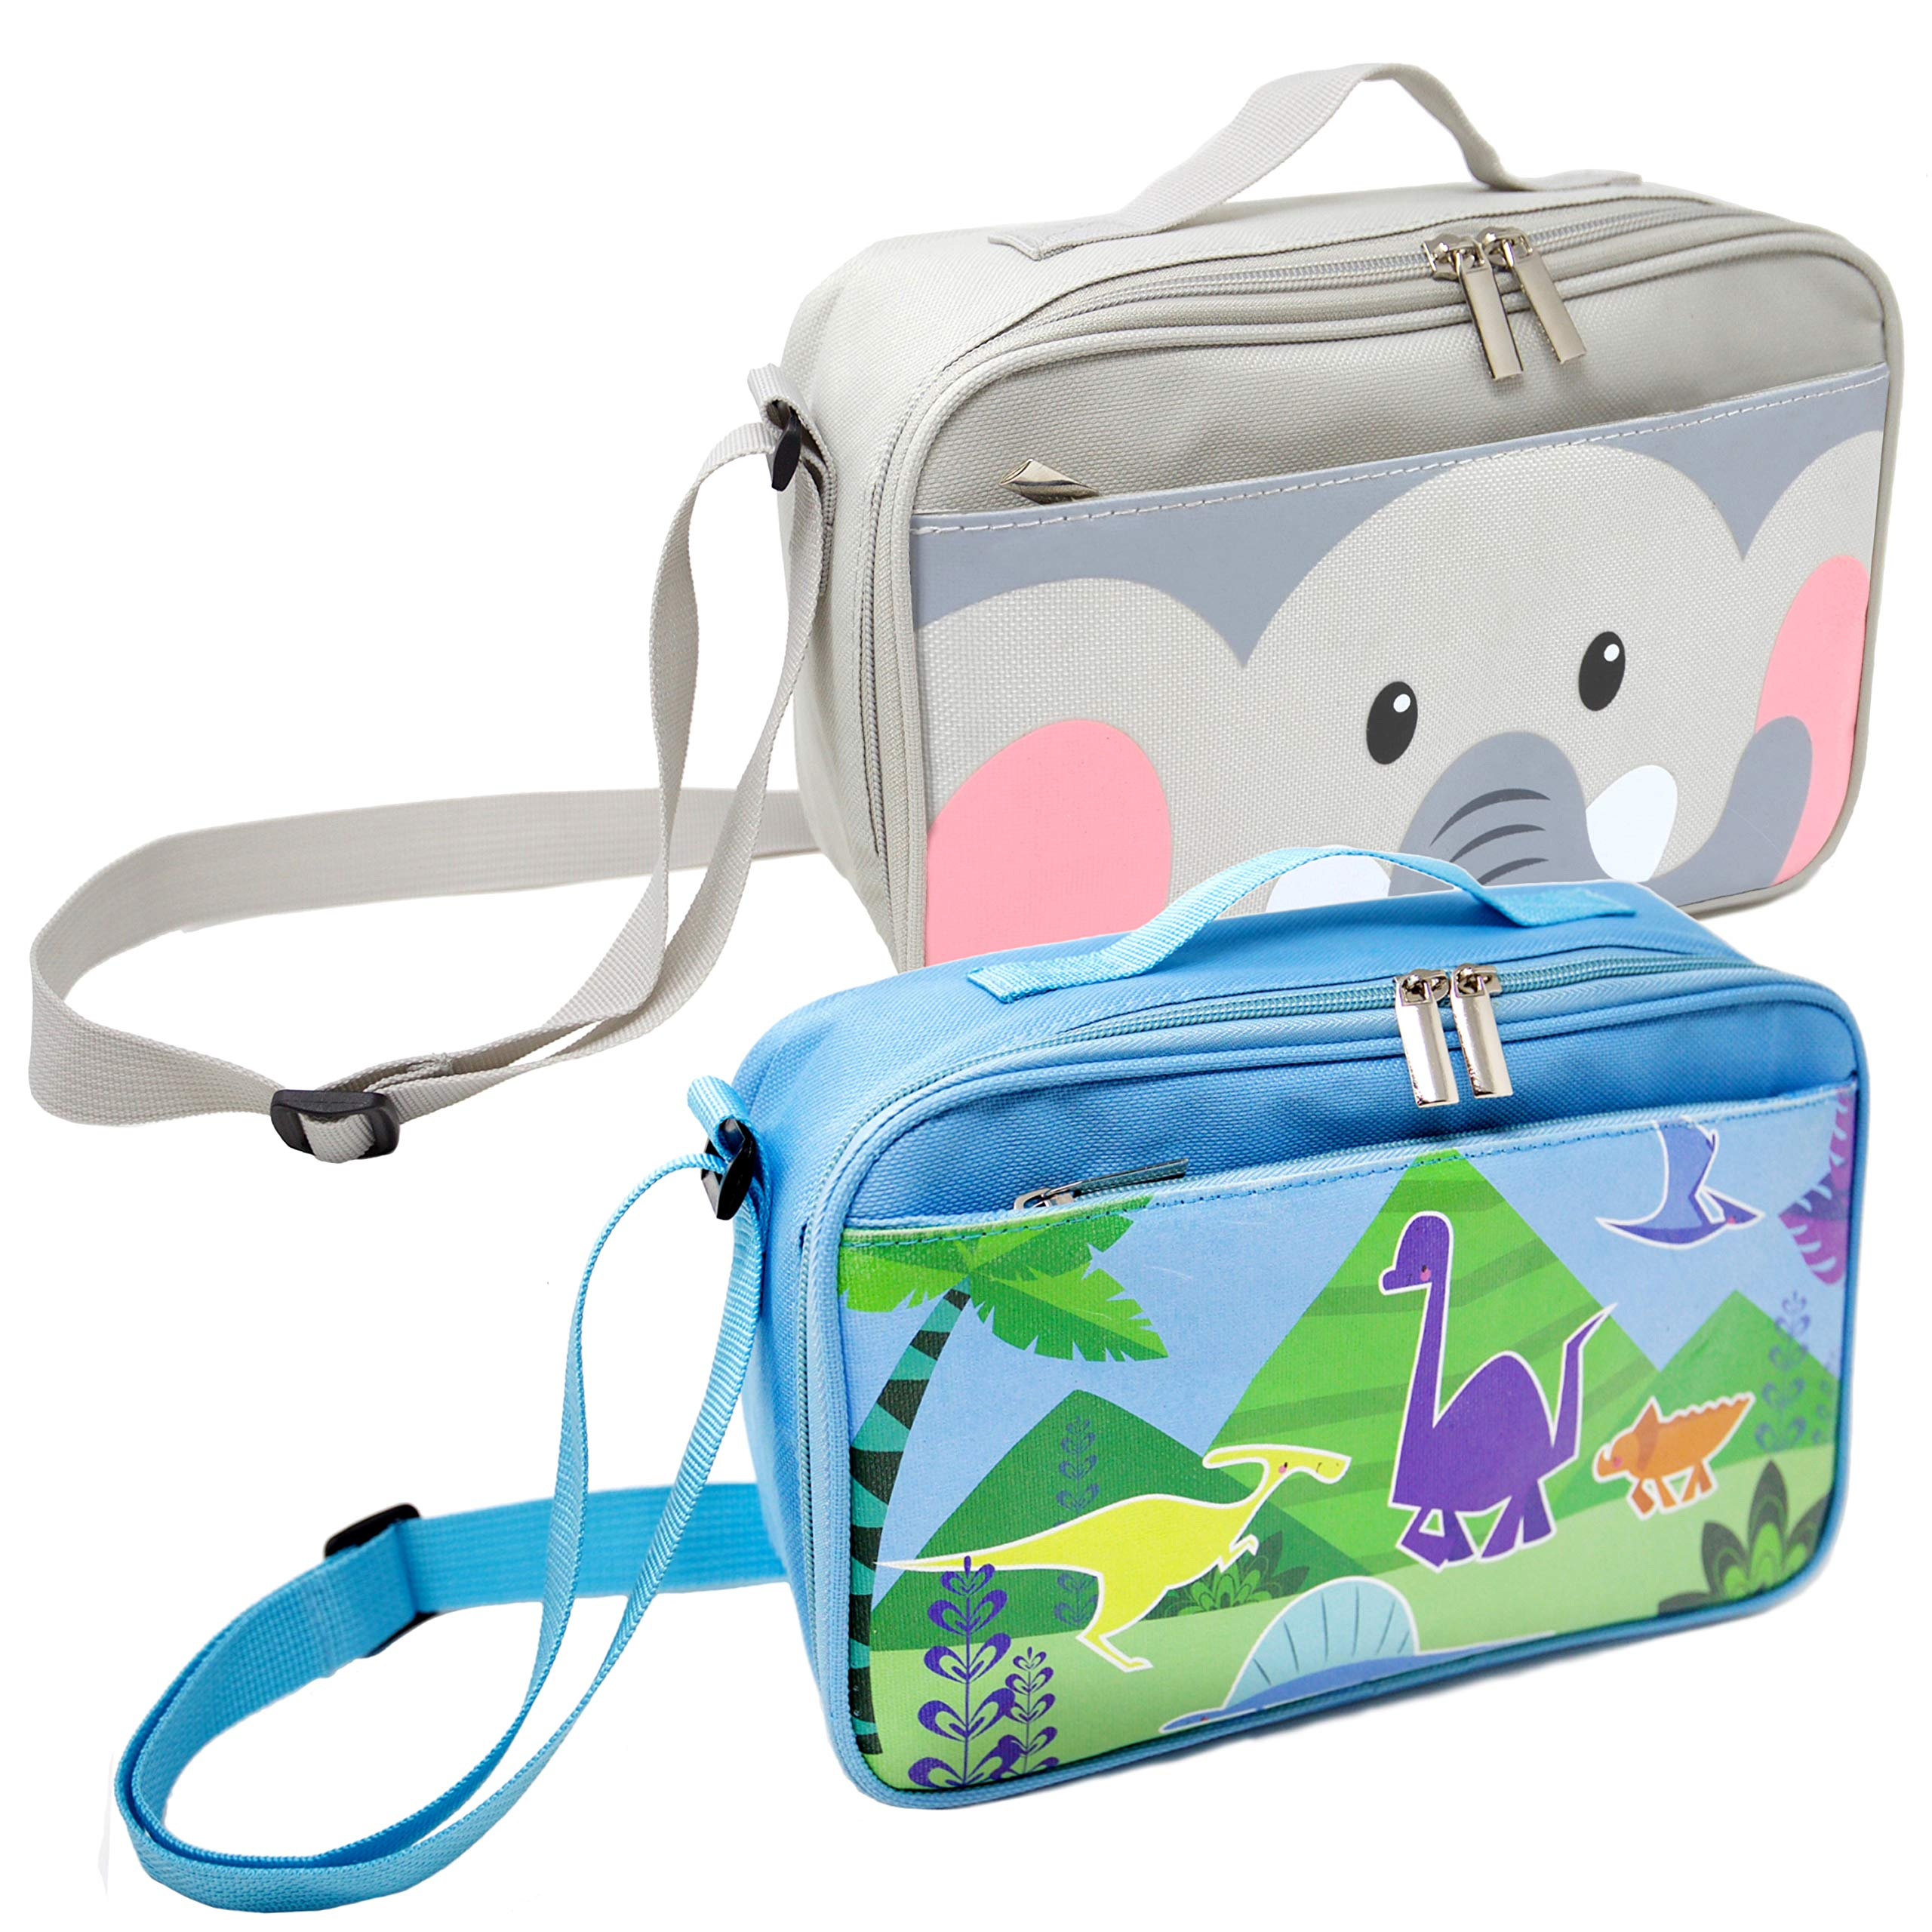 2 Pack Lunch Bags for Kids and Toddlers, Insulated and Water-Resistant Lunch Bag, Reusable Cooler Bags with Adjustable Strap, 10'' x 7'' x 3.5''